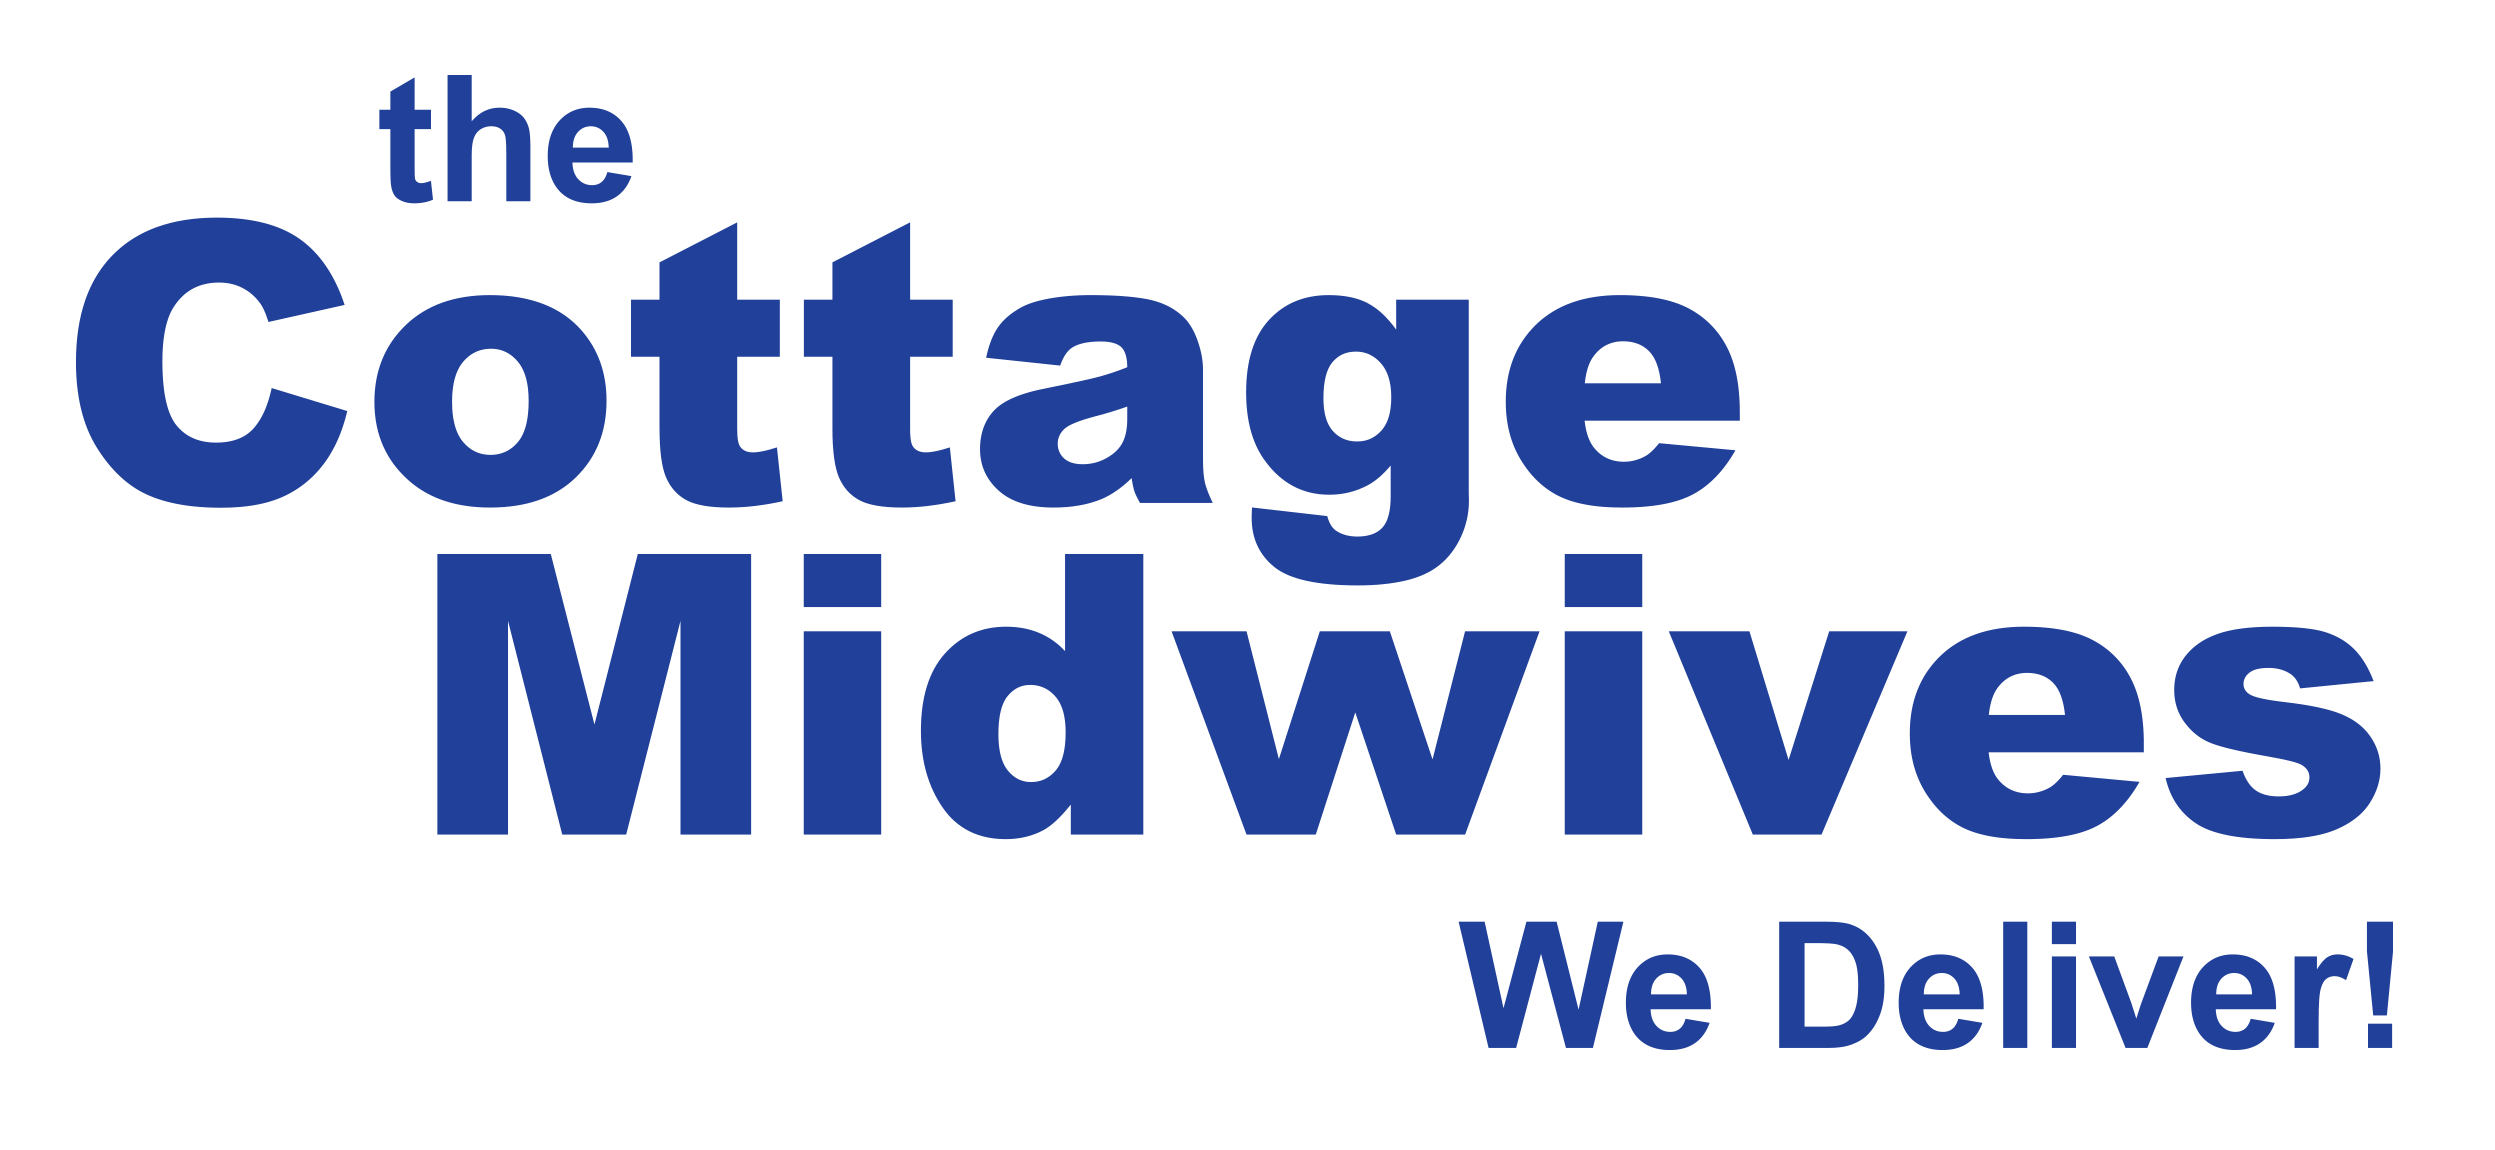 The Cottage Midwives